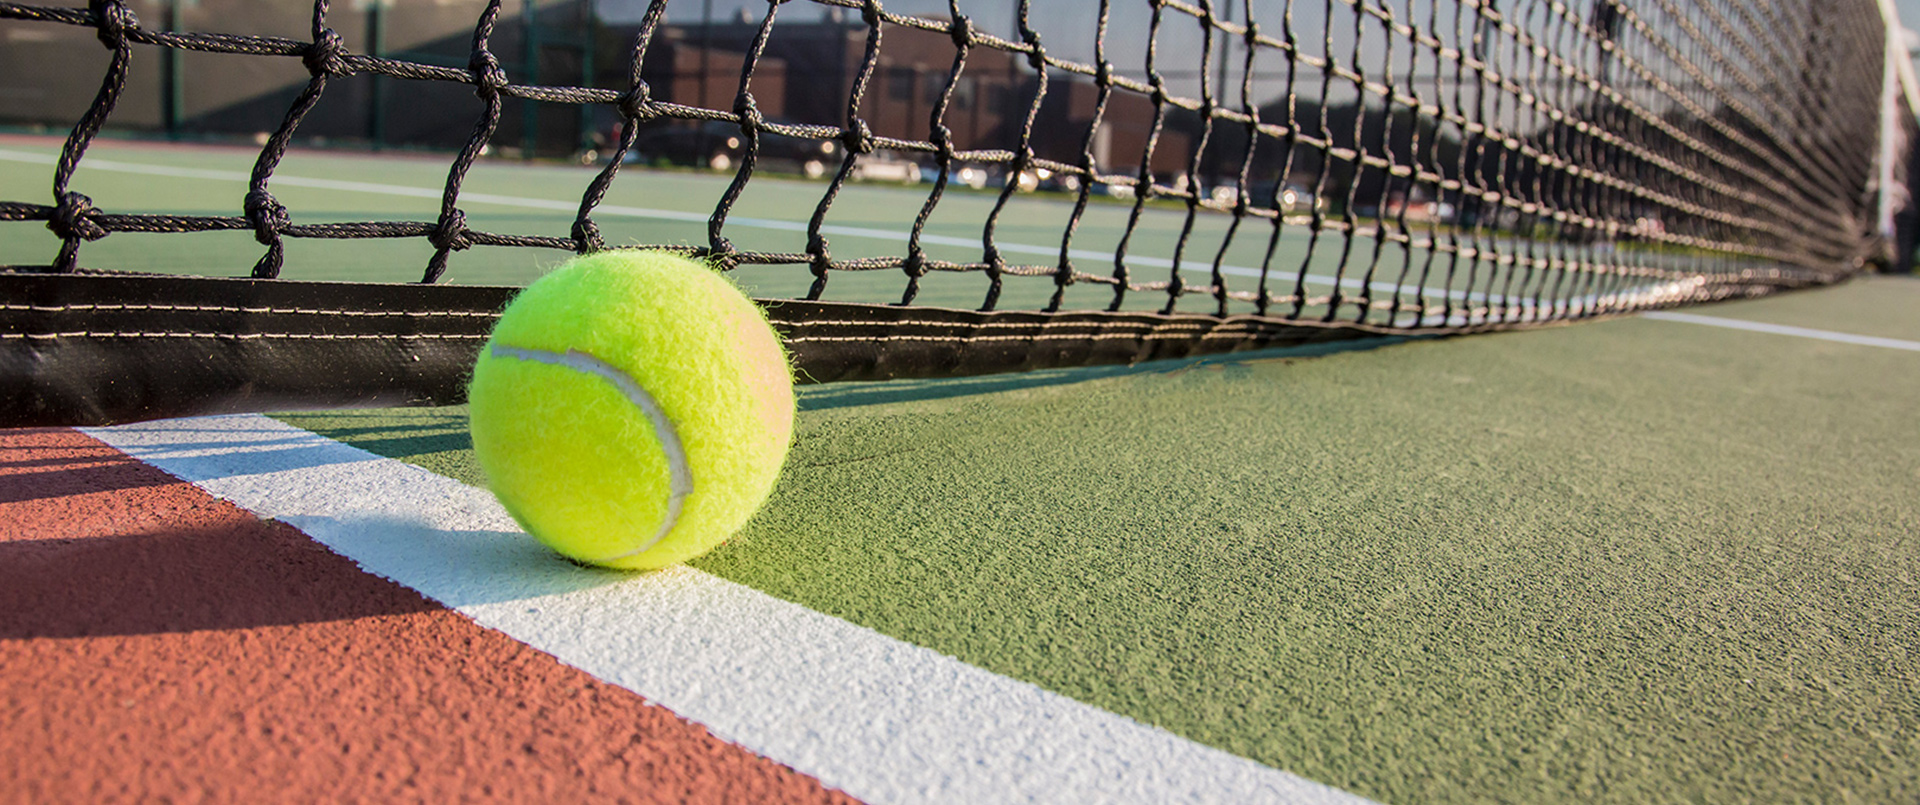 Memphis Tennis Court Construction, Sports Court Resurfacing and Pickleball Court Construction